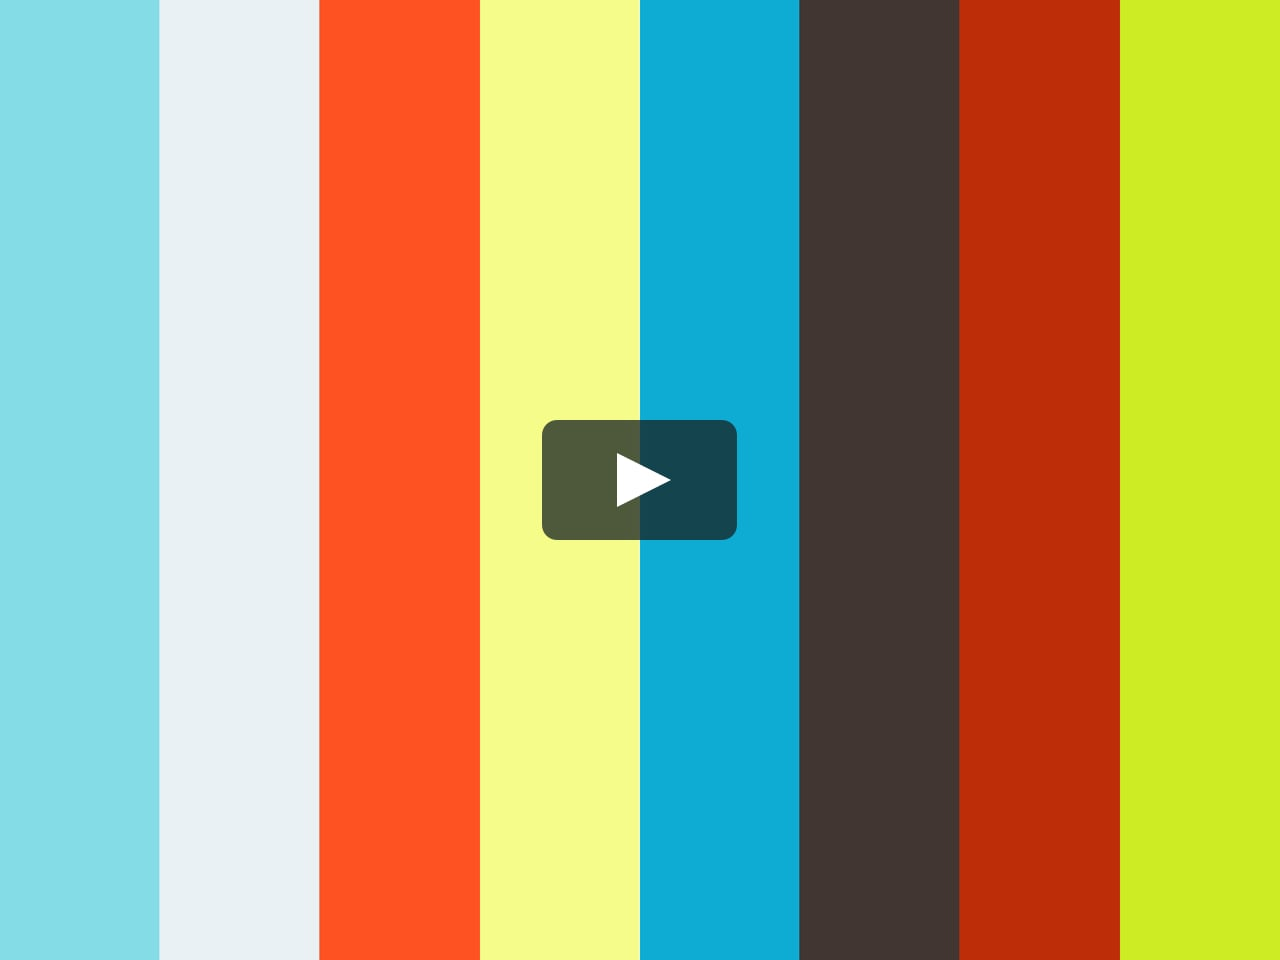 Elena Papandreou plays Nikita KOSHKIN  Megaron  concerto for guitar and orchestra - III movement